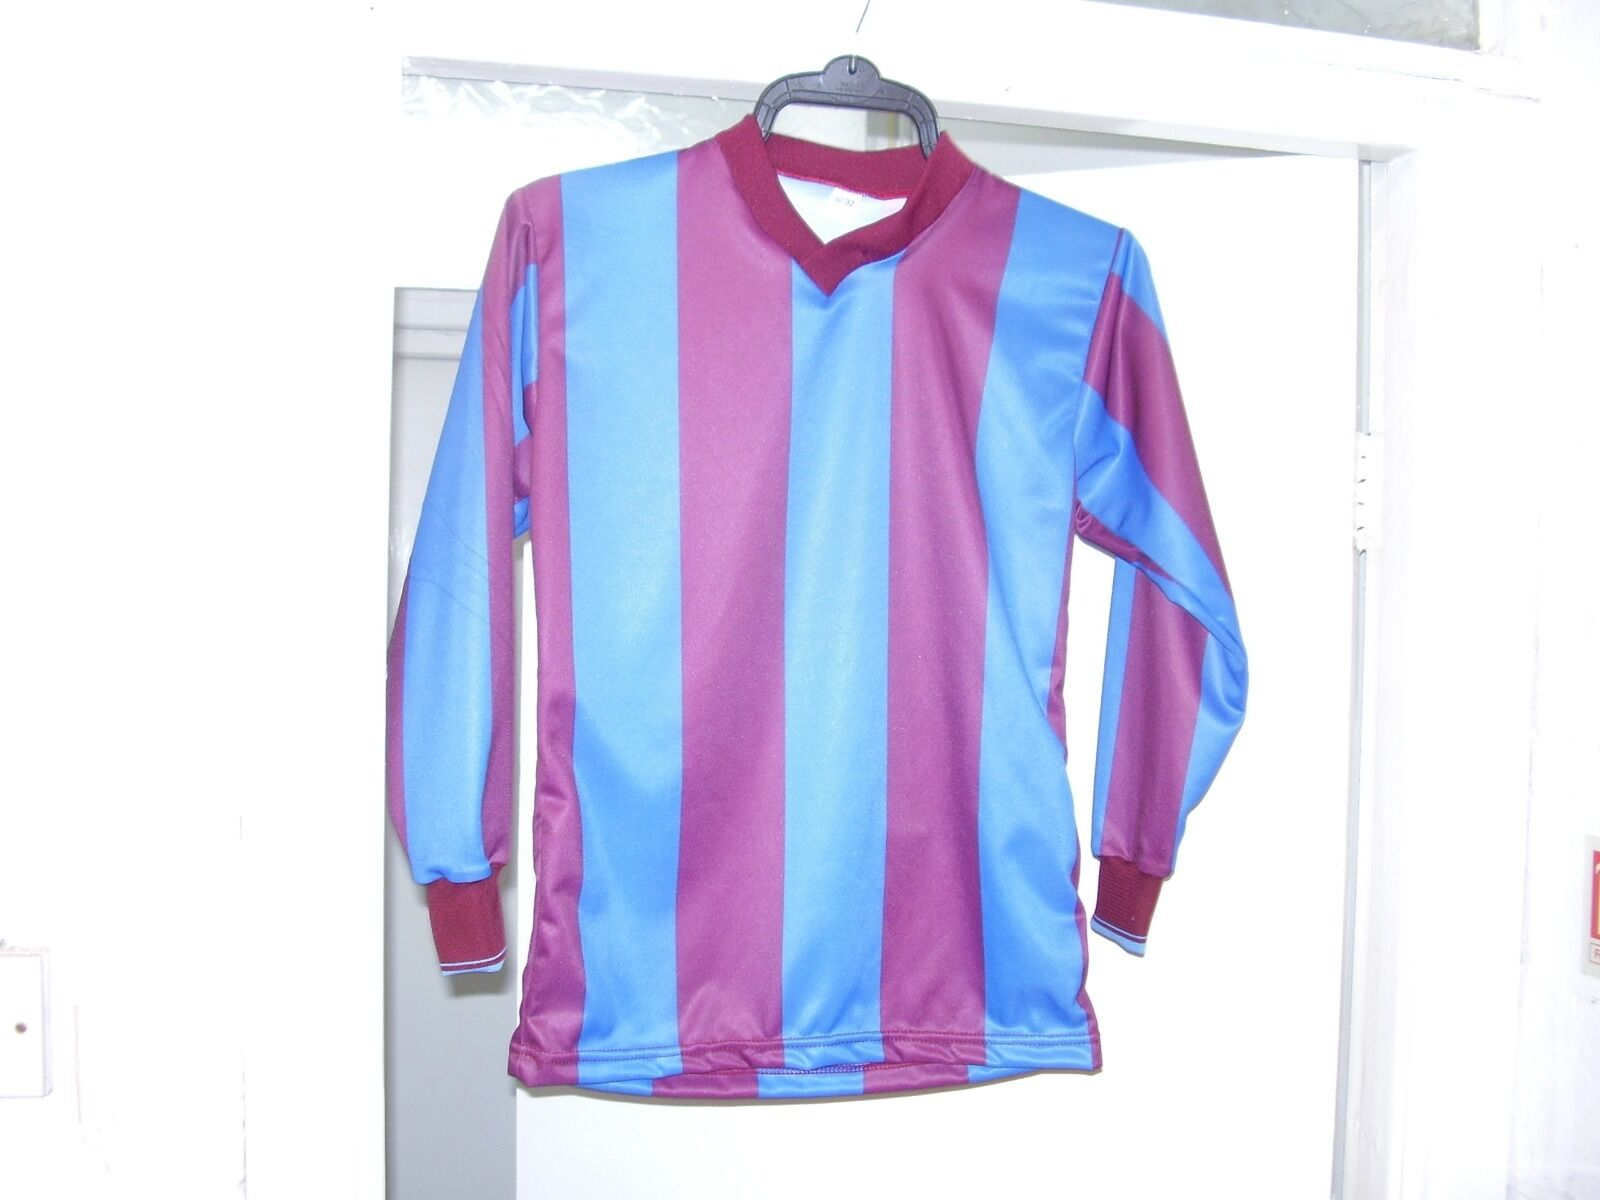 15 X 30 32 CHEST ,BRAND NEW KIDS FOOTBALL SHIRTS,MAROON  AZURE STRIPE